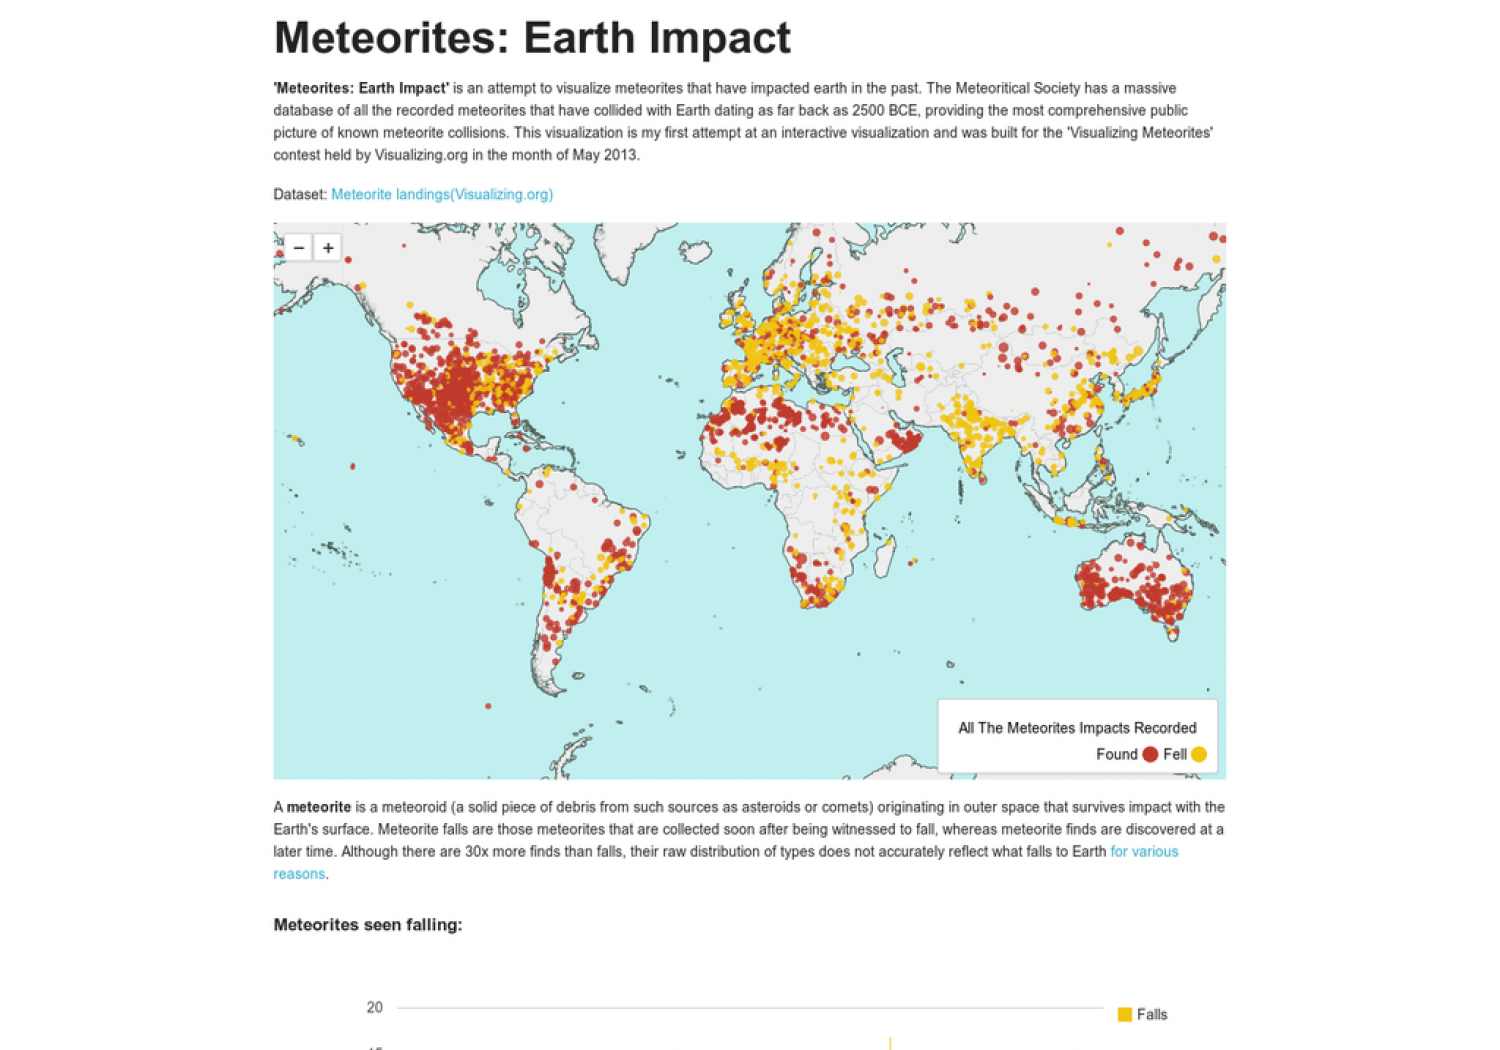 'Meteorites: Earth Impact' Infographic